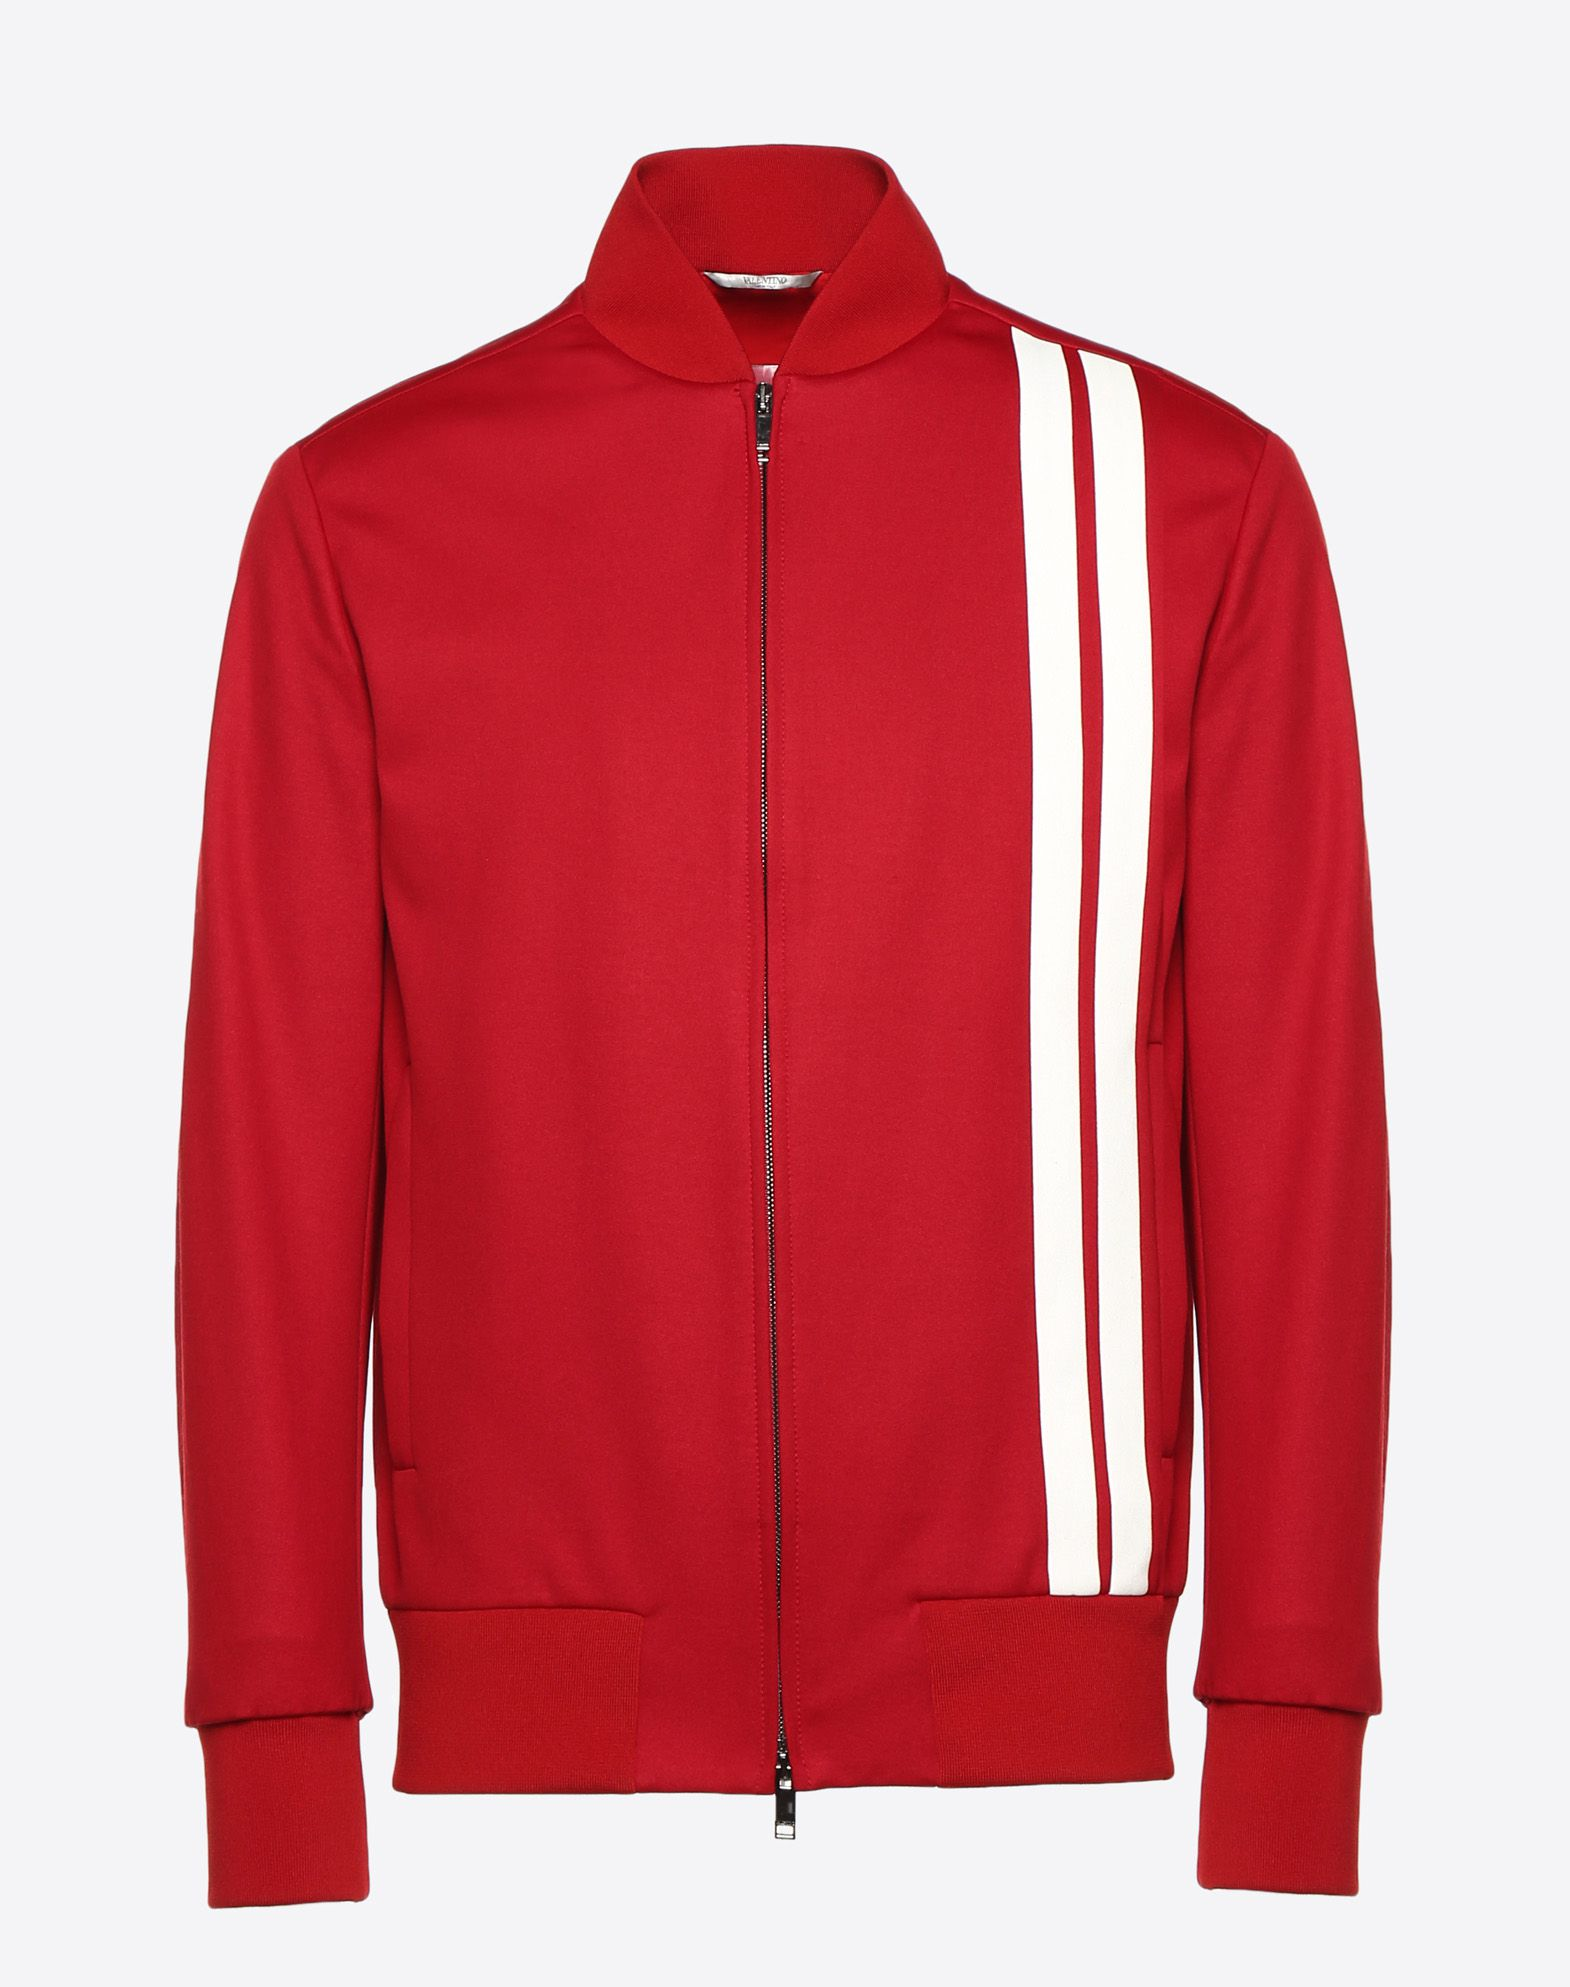 VALENTINO UOMO Blouson with vertical stripe inlays JACKET U f